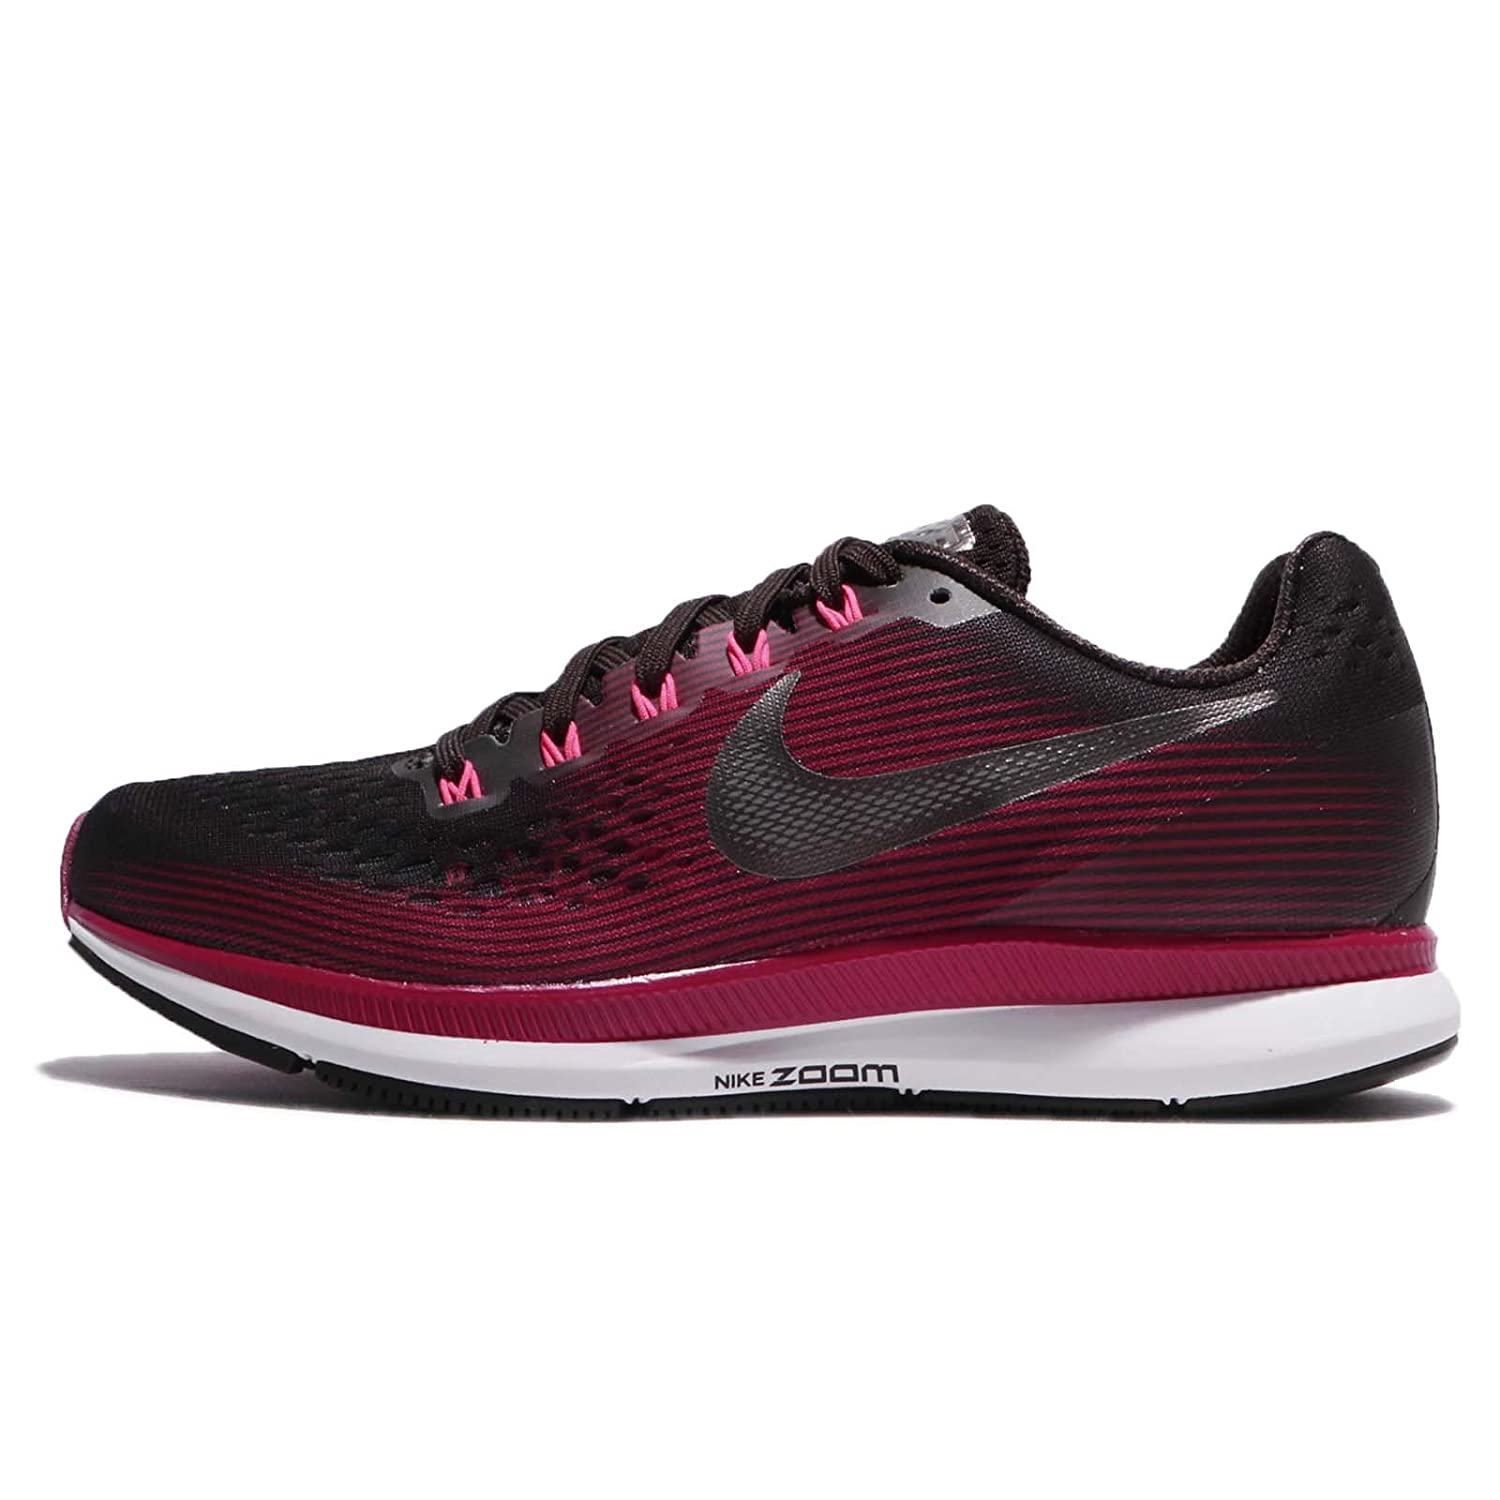 0f5c83d802b Nike Women s Air Zoom Pegasus 34 Running Shoe (Gem) Shadow Brown Metallic  Pewter Rush Maroon Size 9.5 M US  Amazon.in  Shoes   Handbags